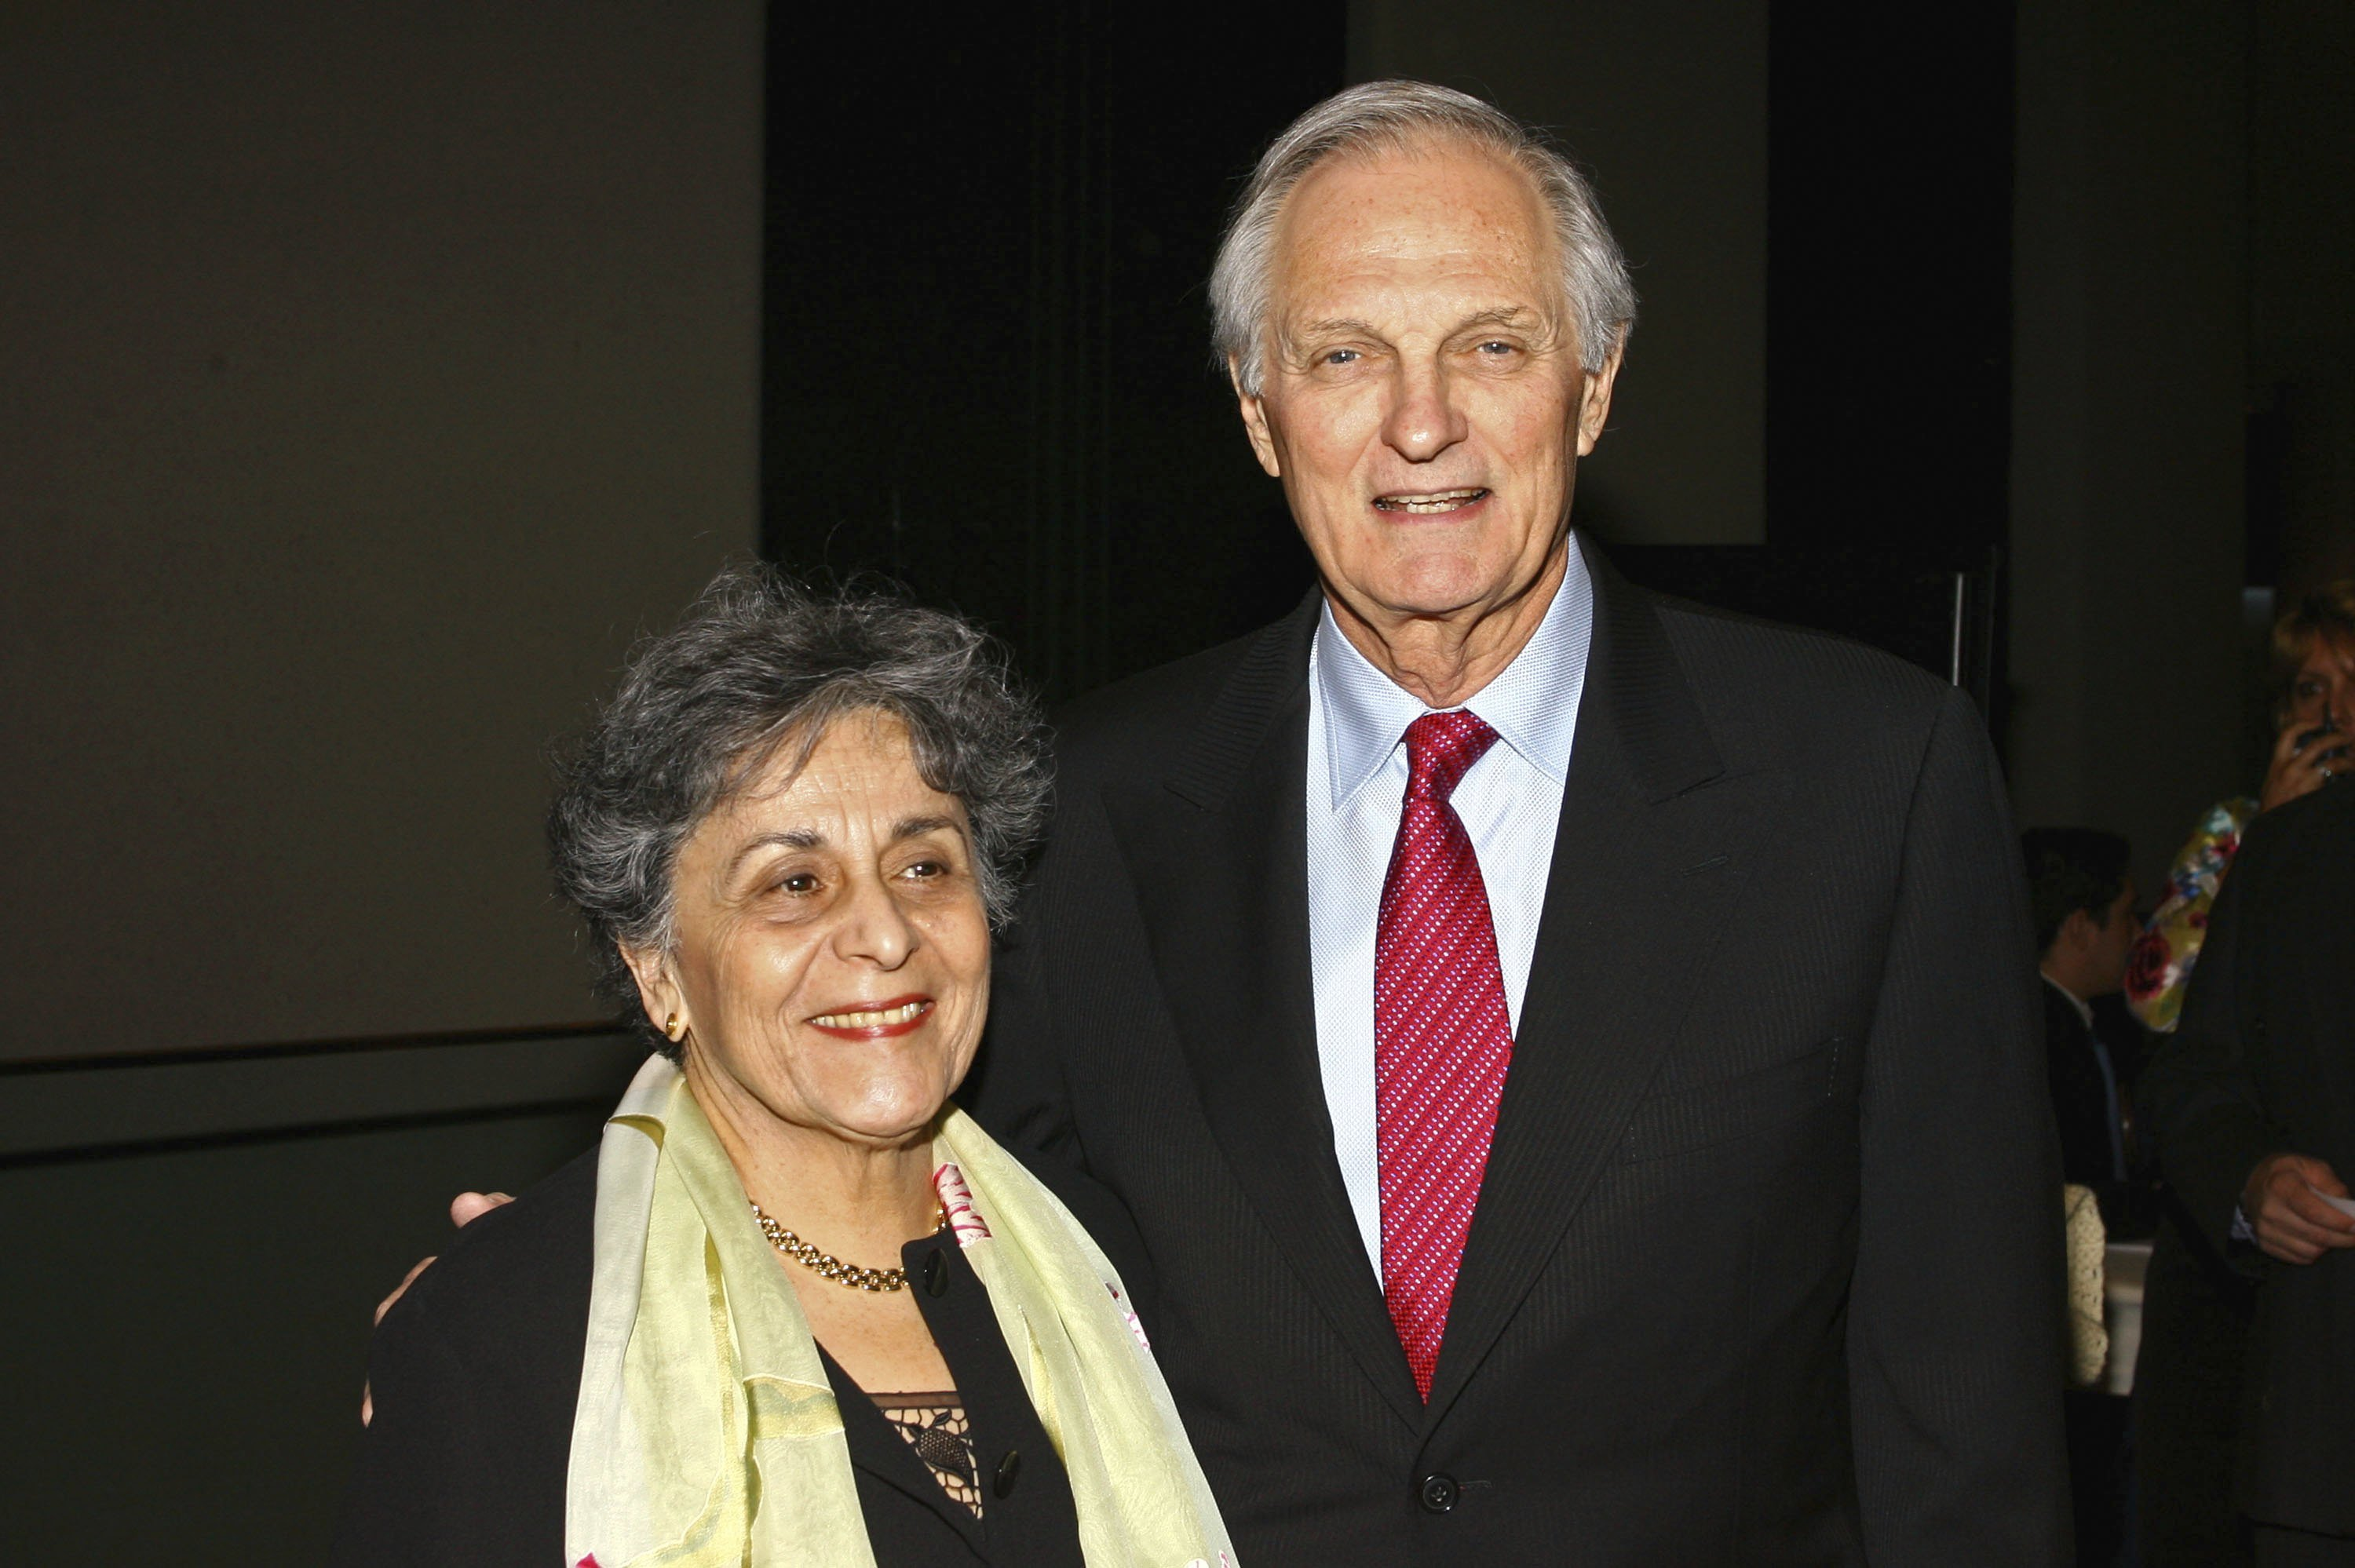 Arlene Alda & Alan Alda at the National Italian American Foundation East Coast Gala on April 18, 2006 in New York | Photo: Getty Images